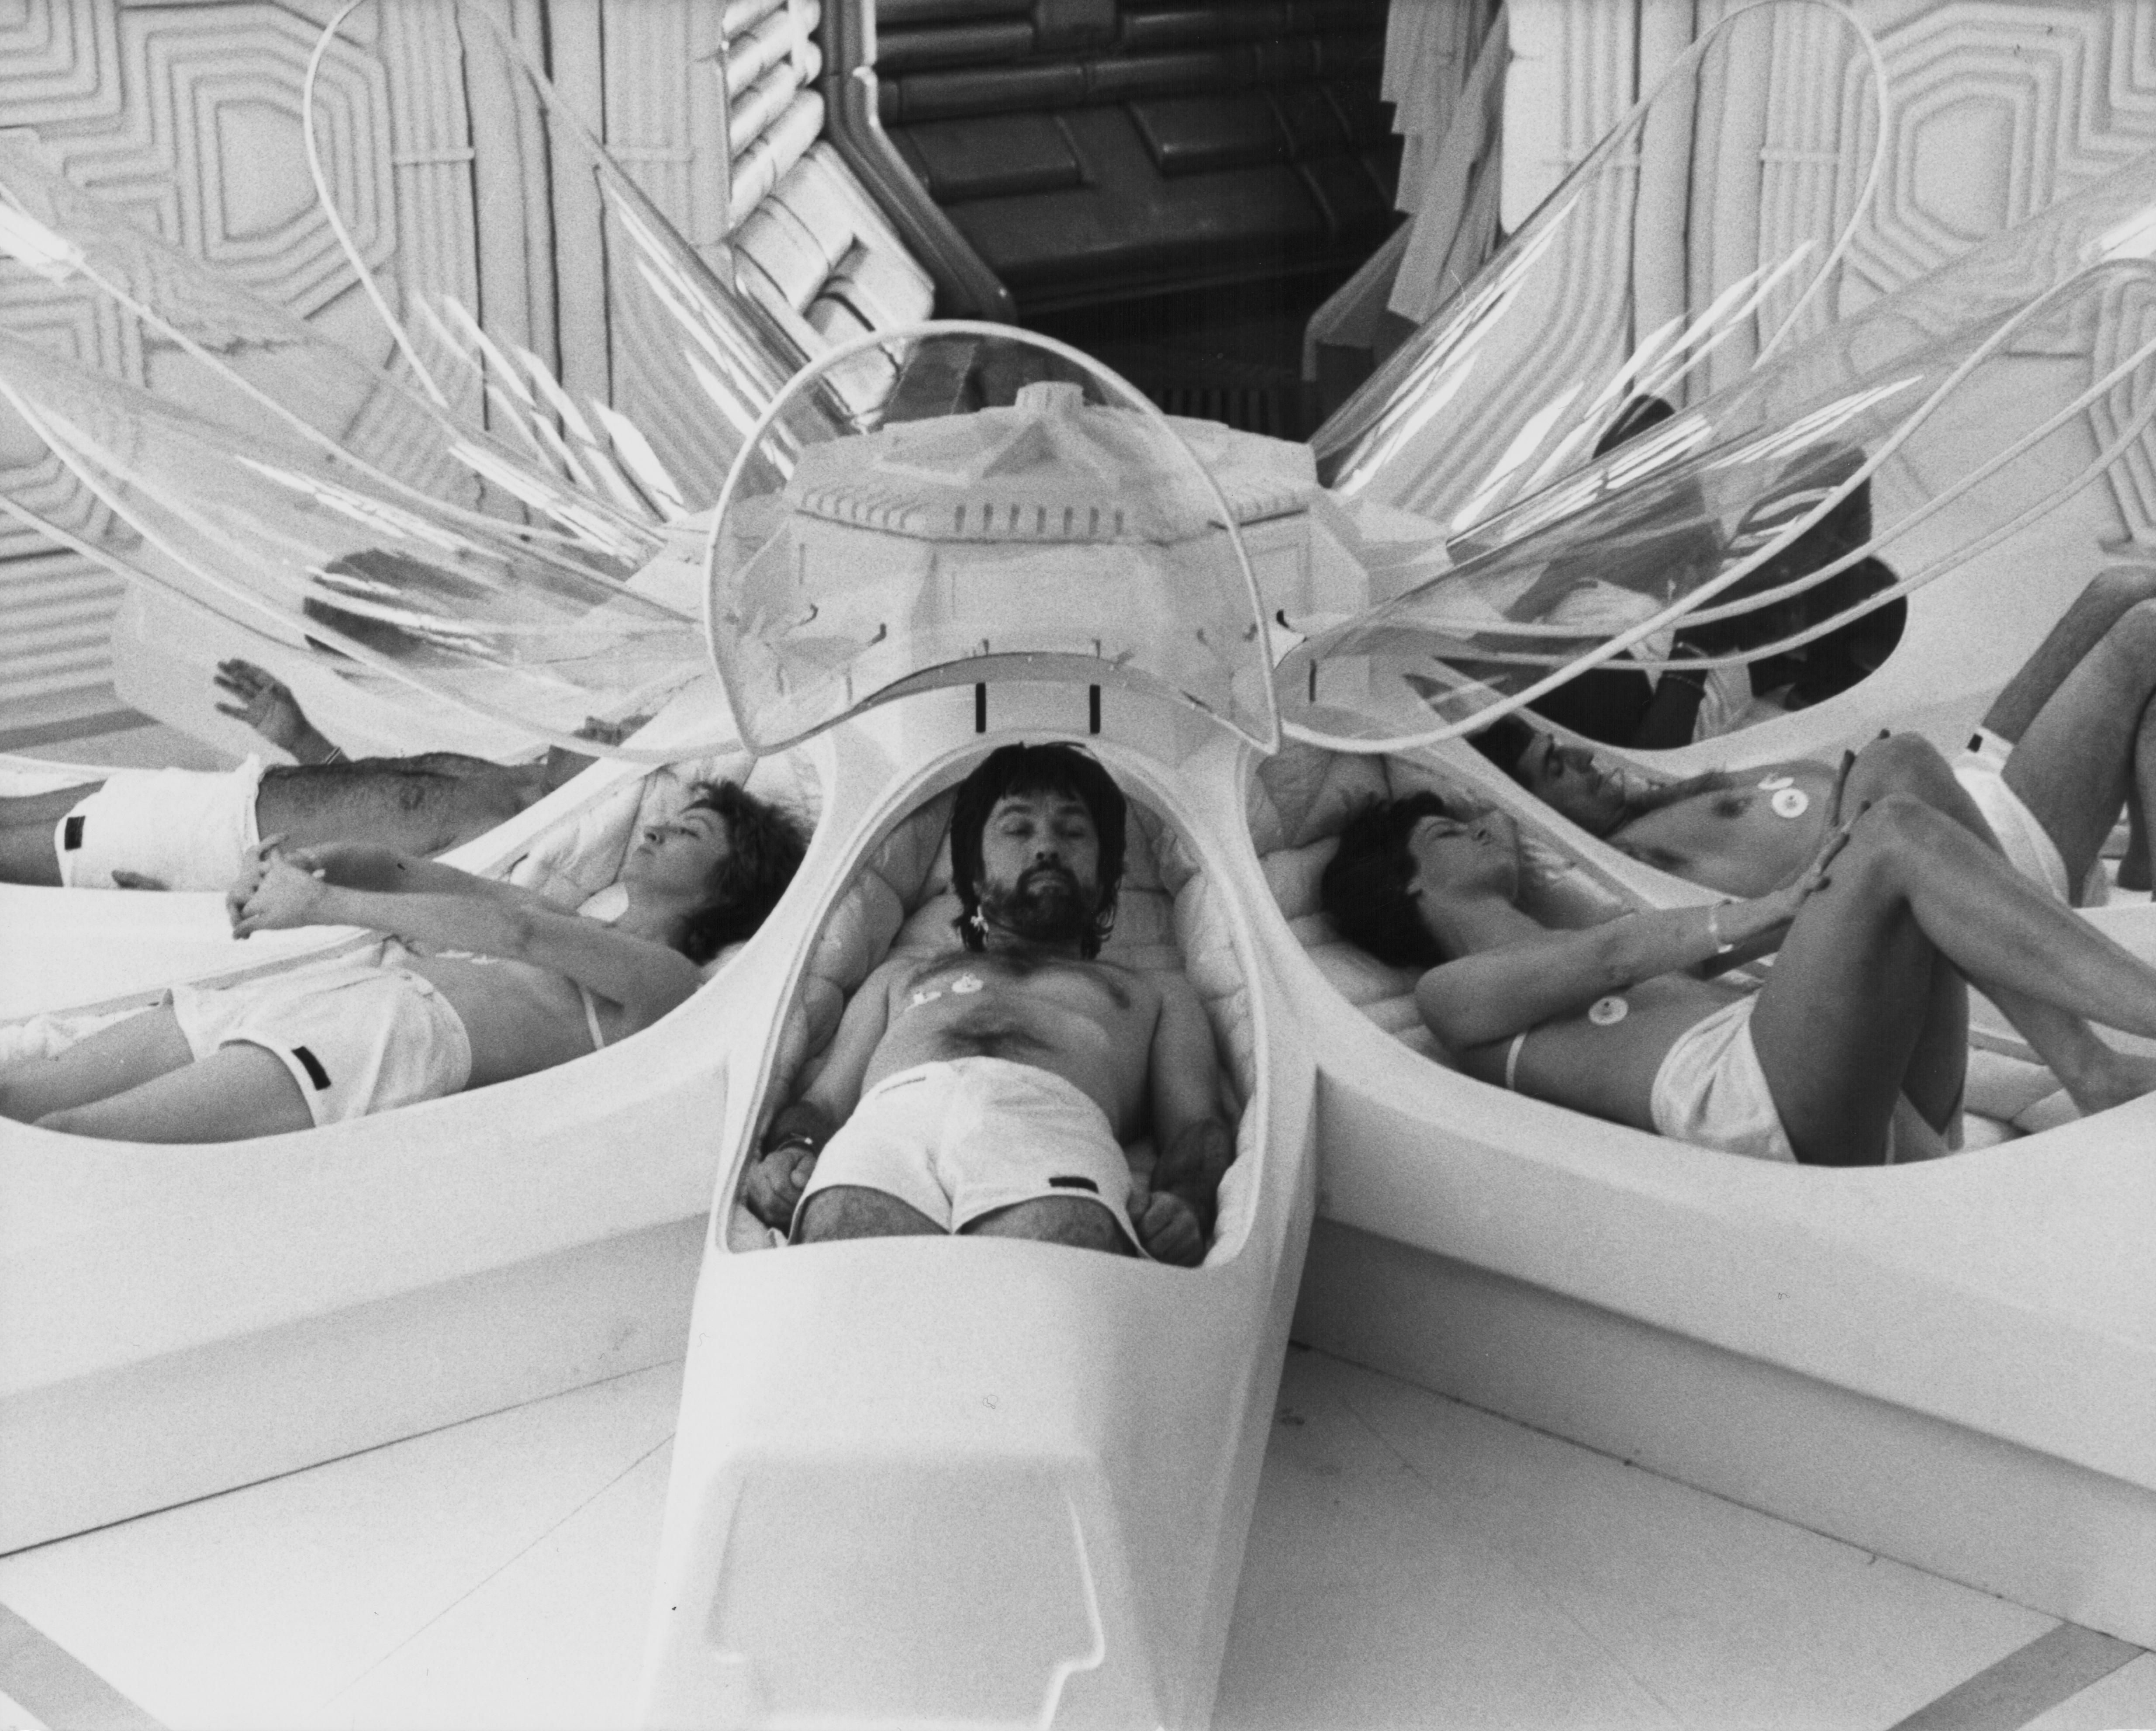 A scene from the movie Alien, in which the spaceship crew awakens from sleep pods.